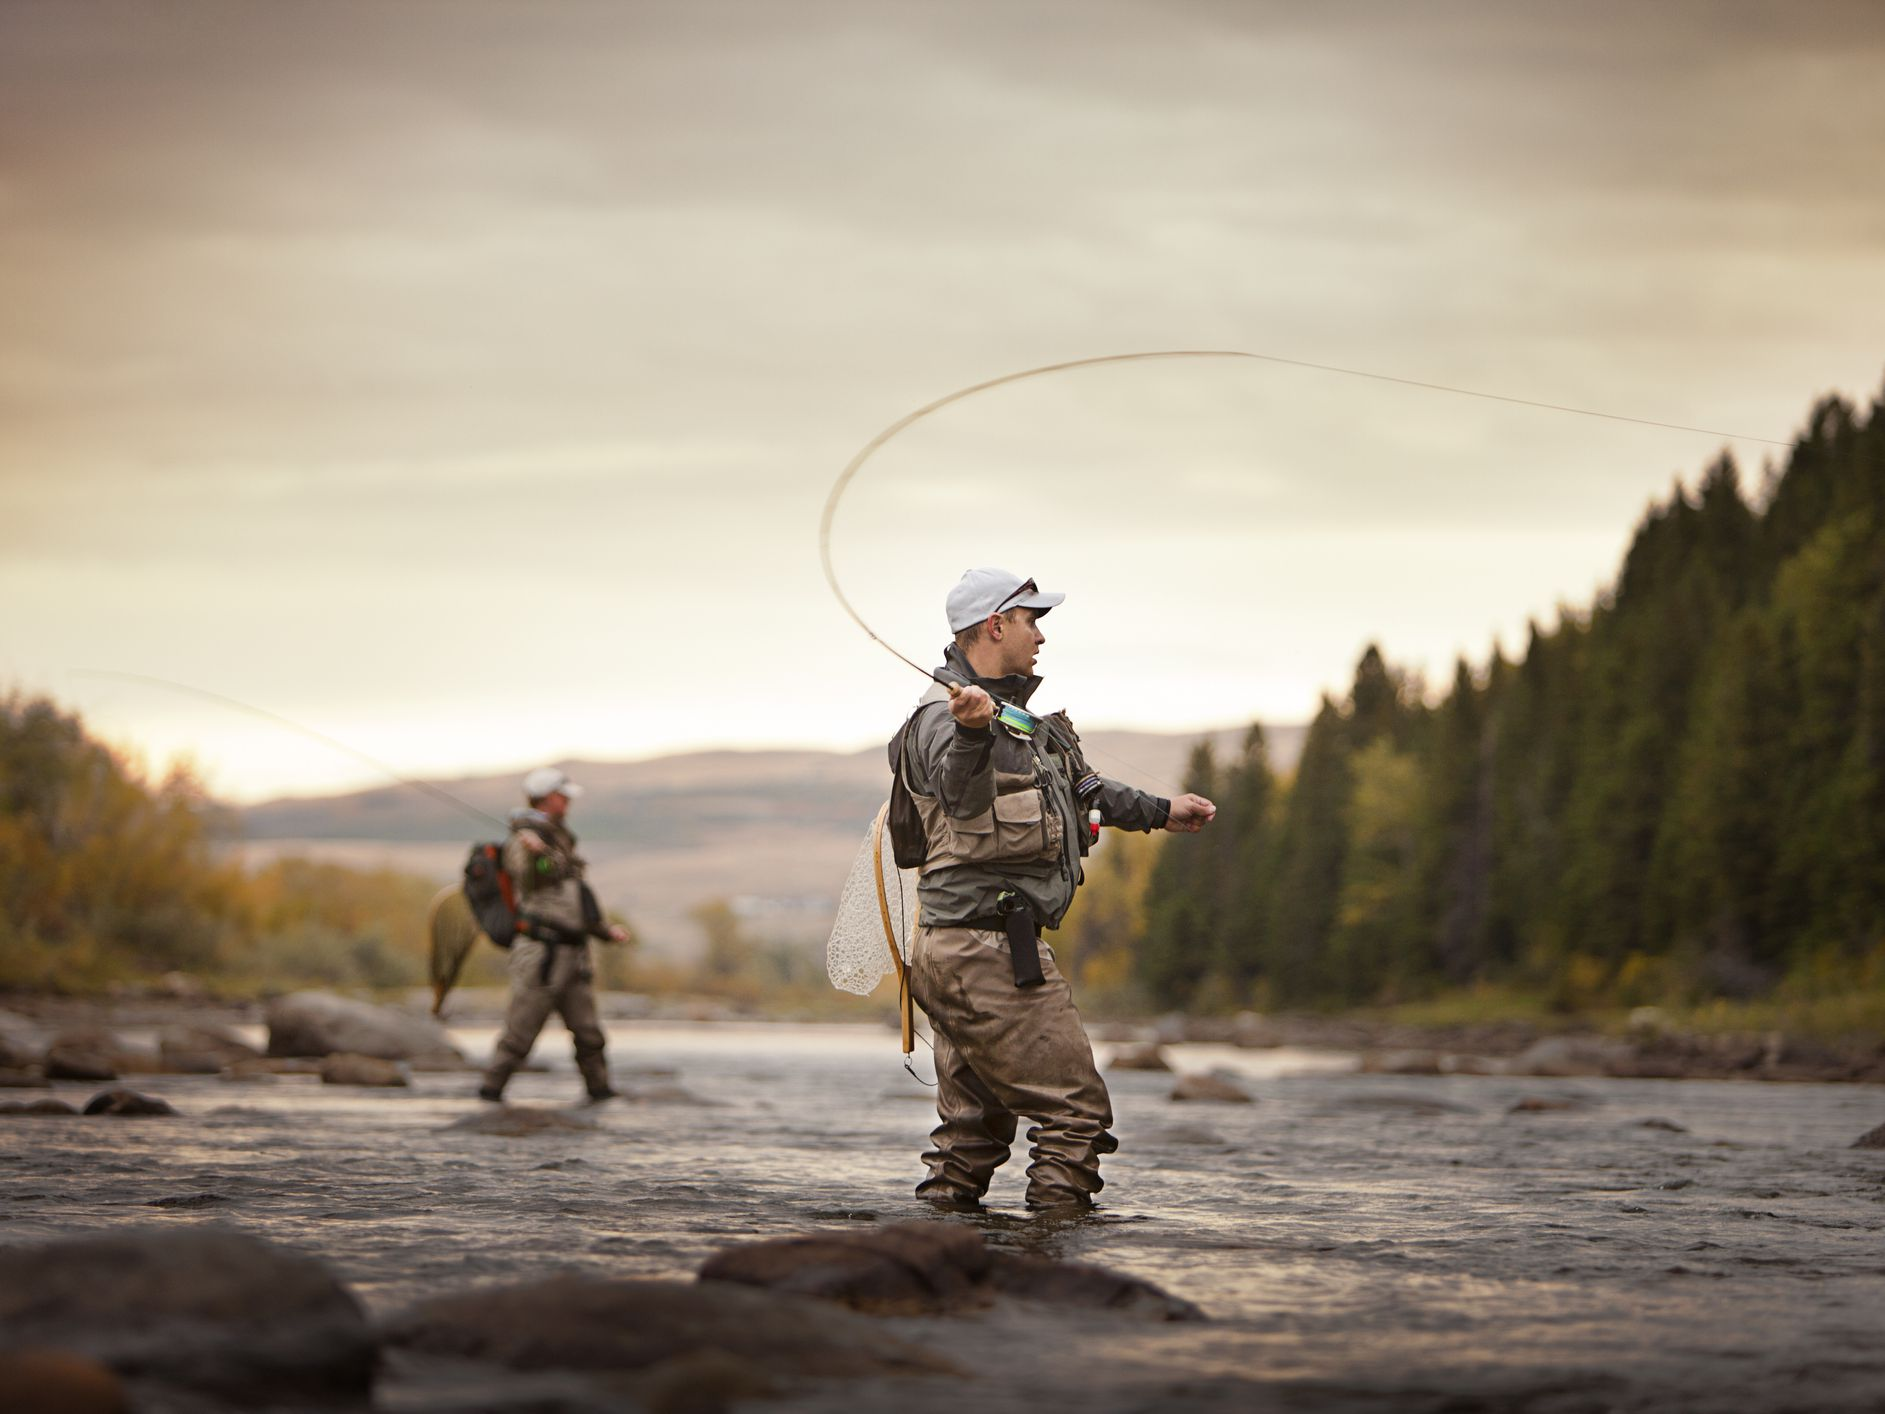 The 7 Best Fly Fishing Rods of 2019